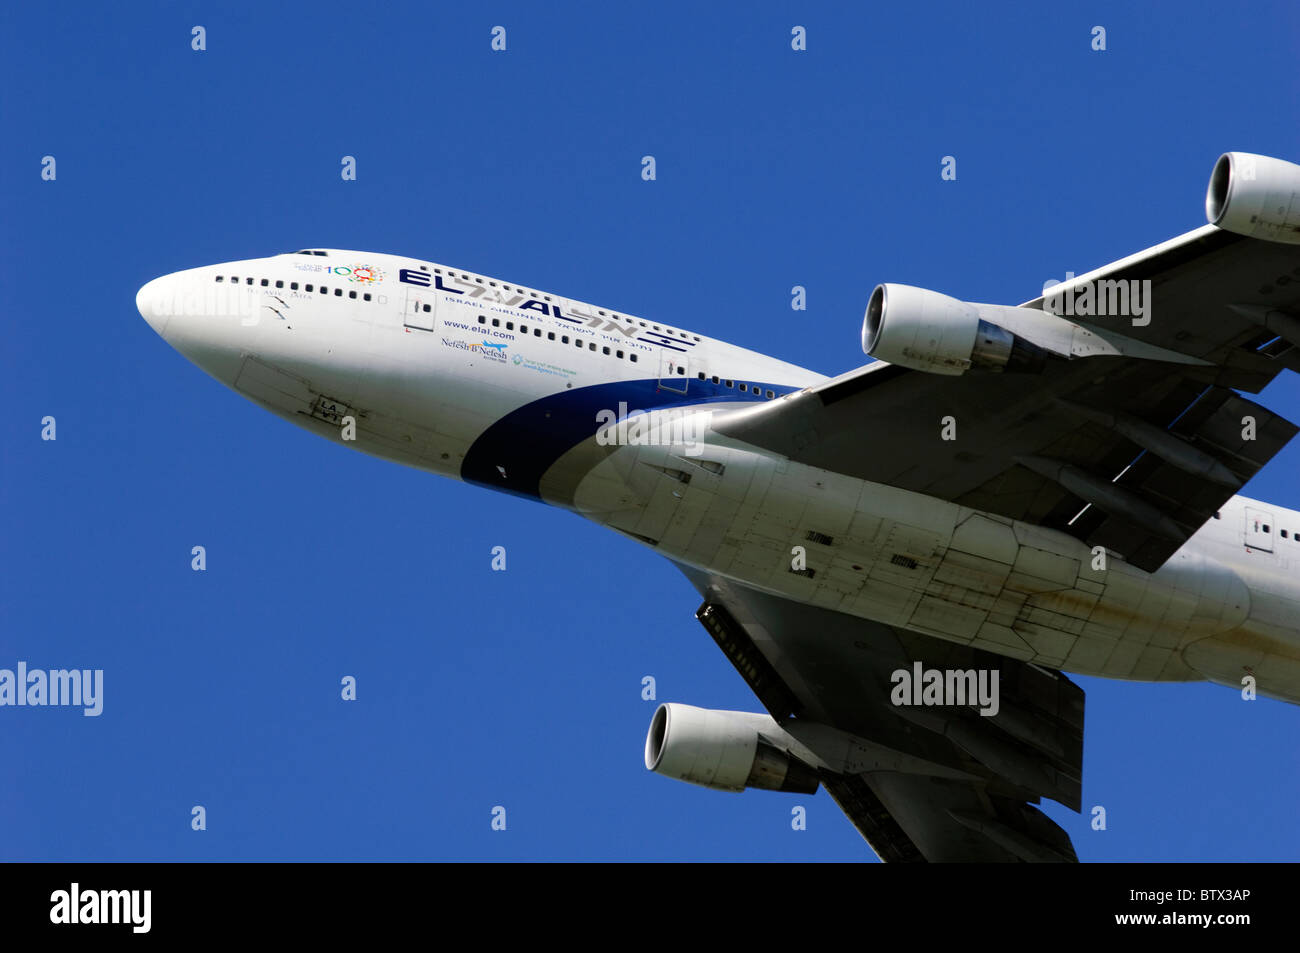 Boeing 747 Jumbo Jet operated by El Al climbing out after take off from London Heathrow Airport - Stock Image